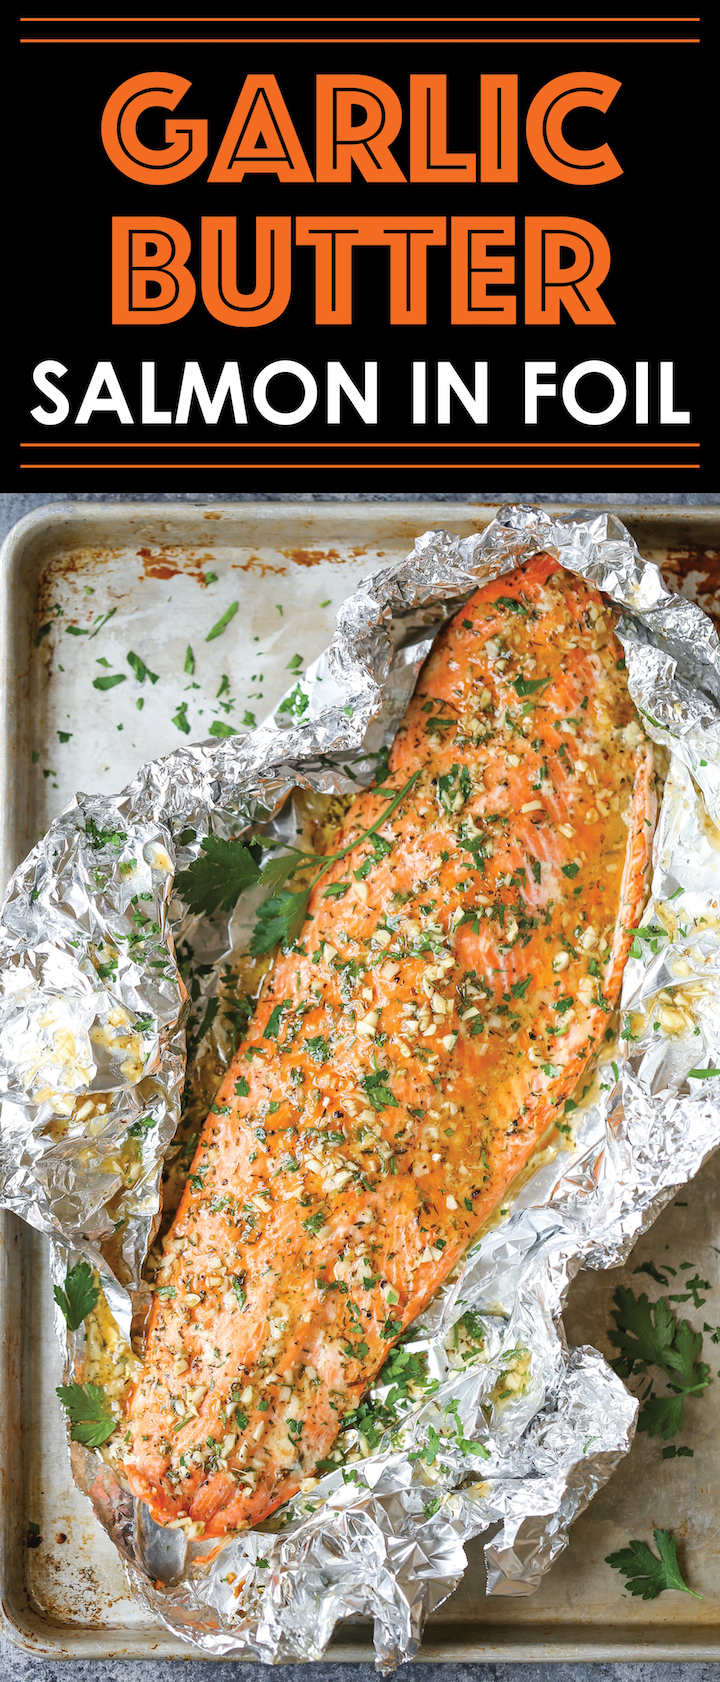 Garlic Butter Salmon In Foil Damn Delicious